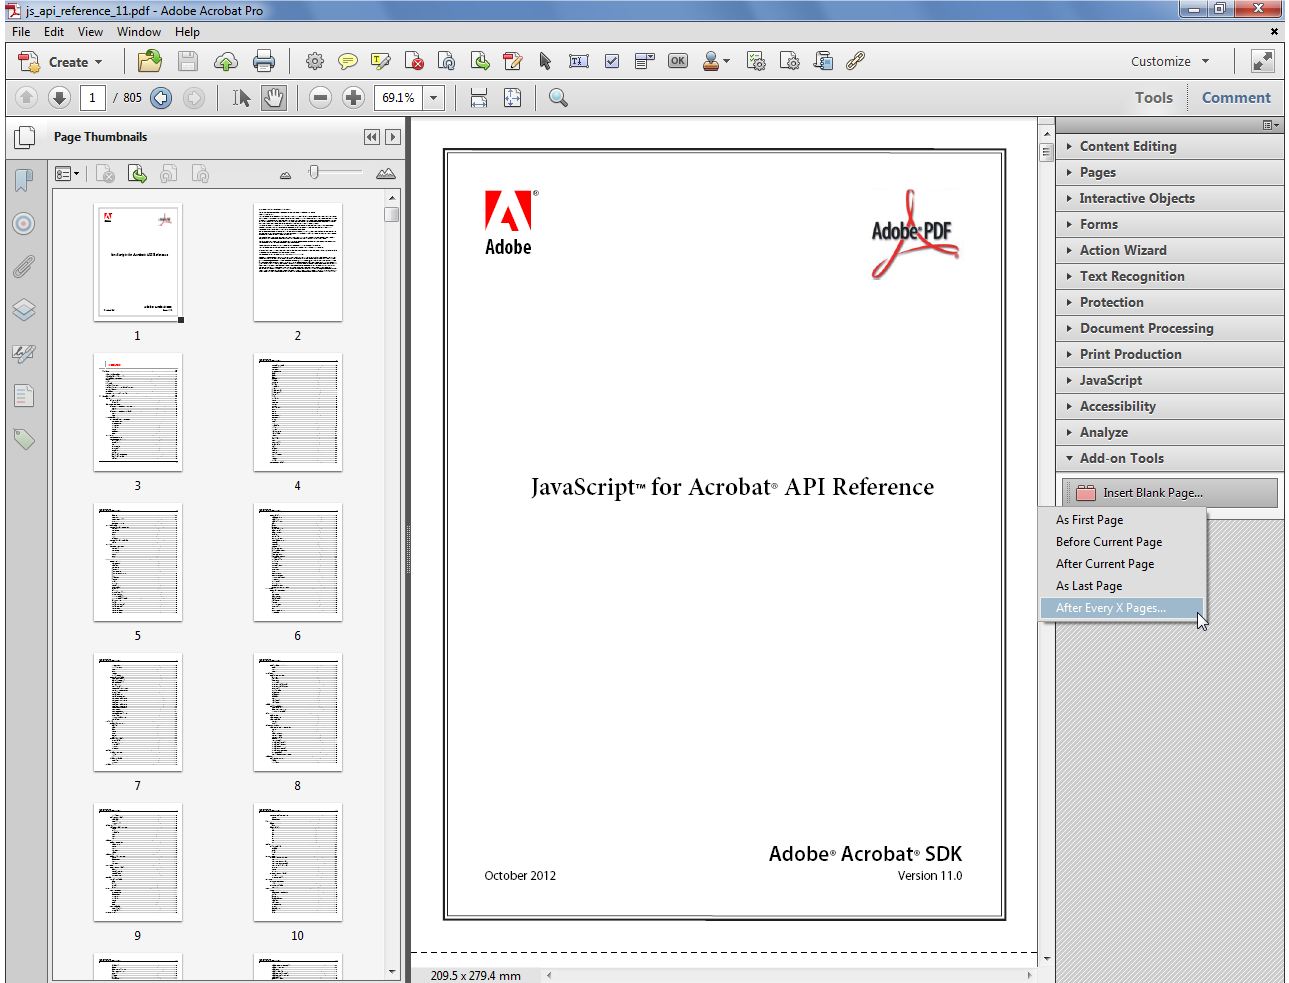 how to delete a page in adobe acrobat